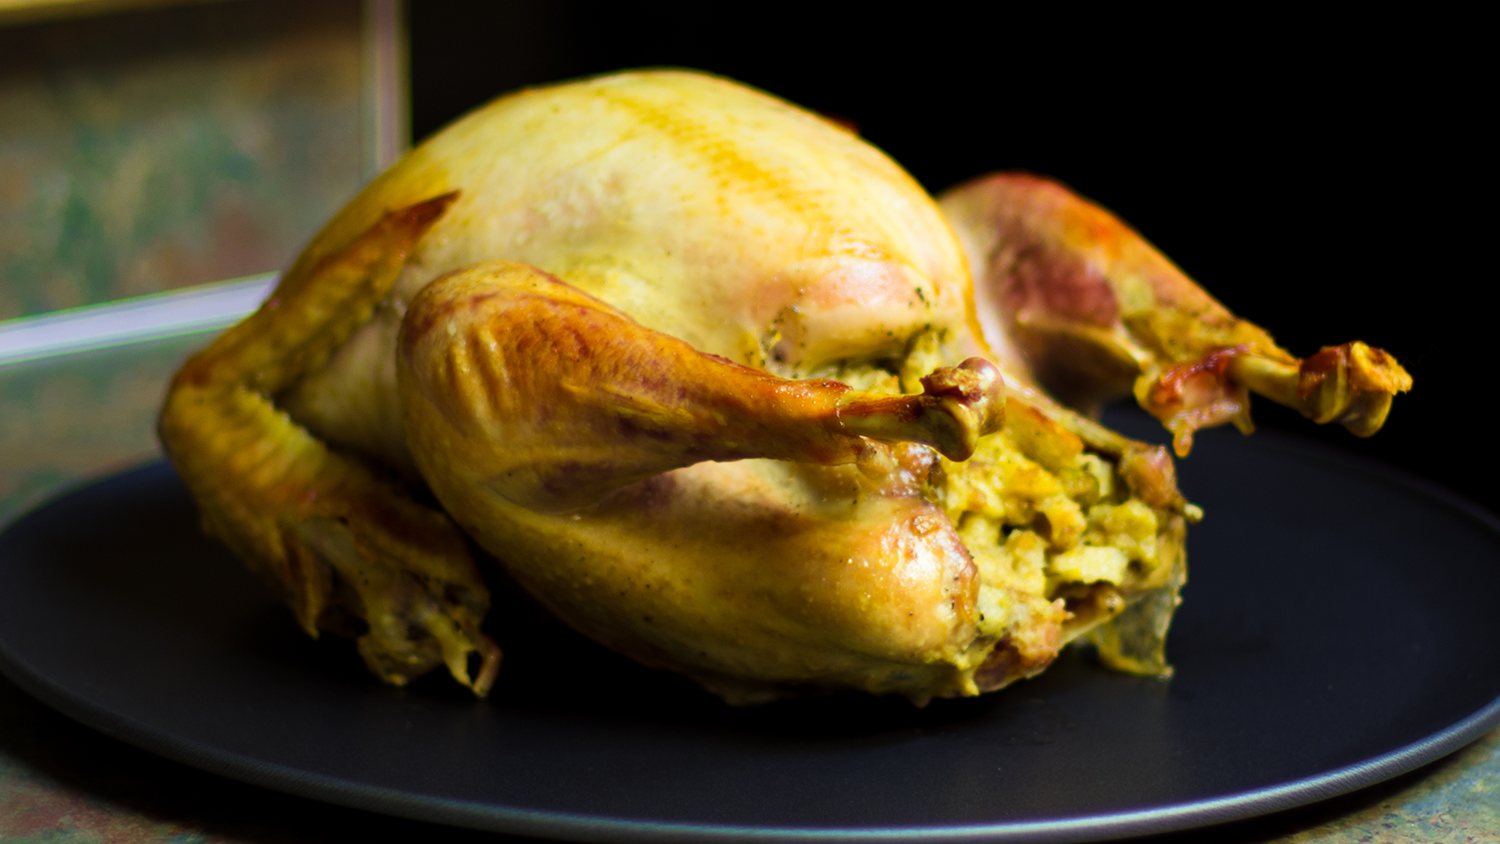 Image of turkey with stuffing